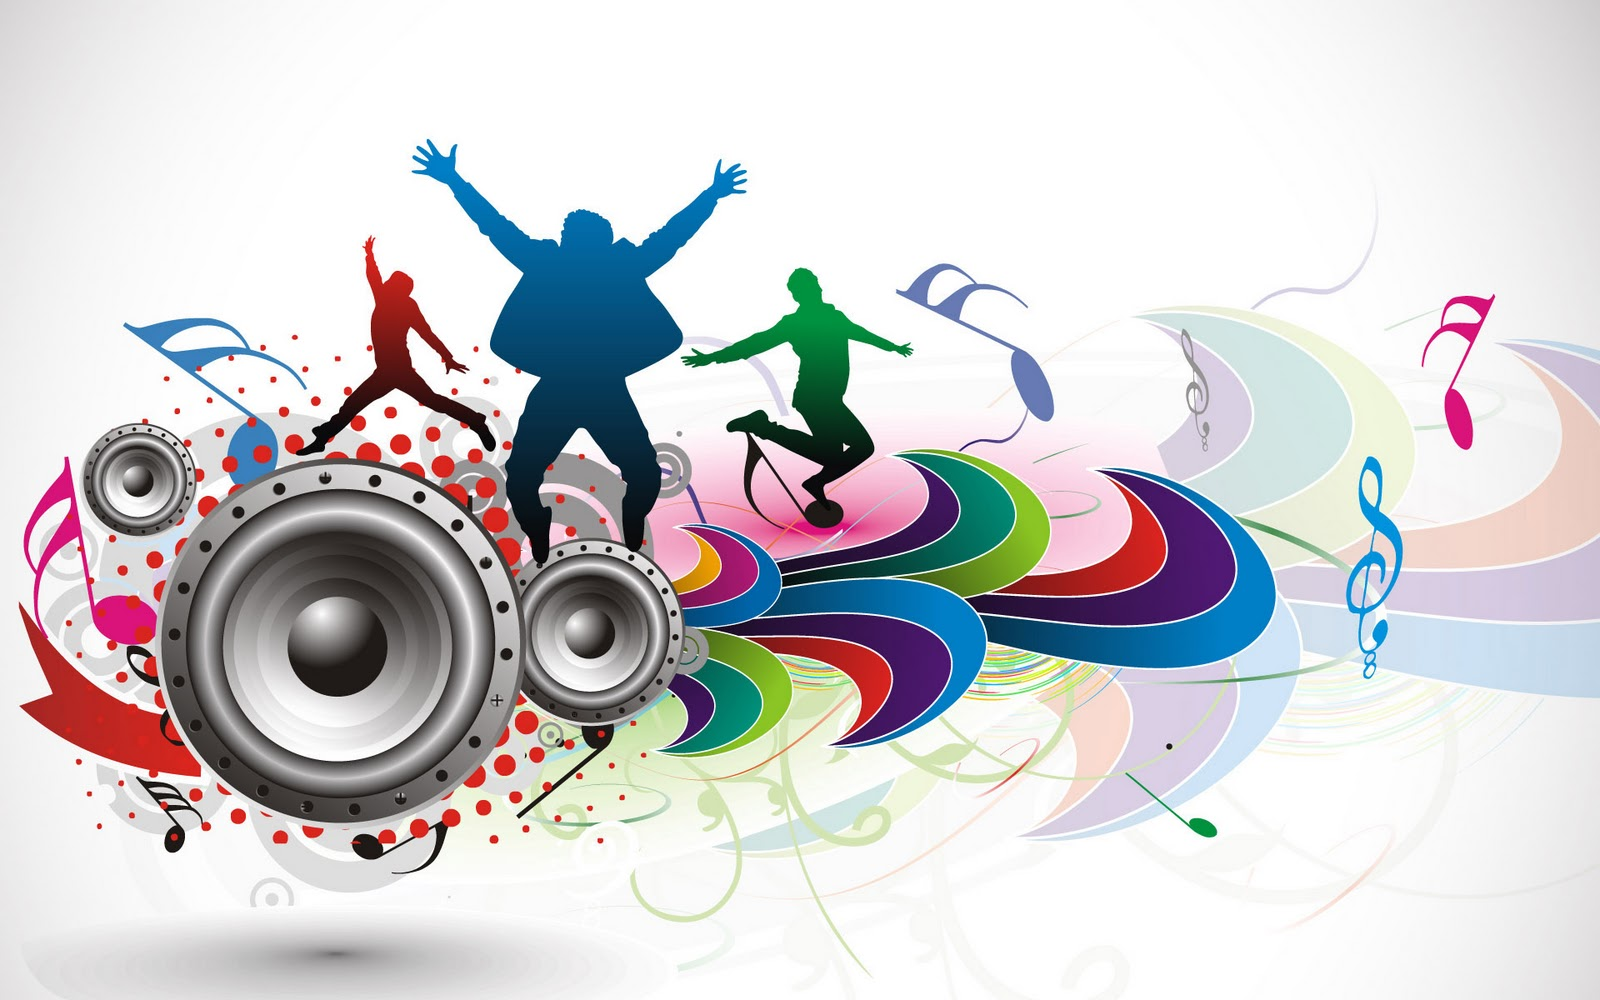 Music cool Images